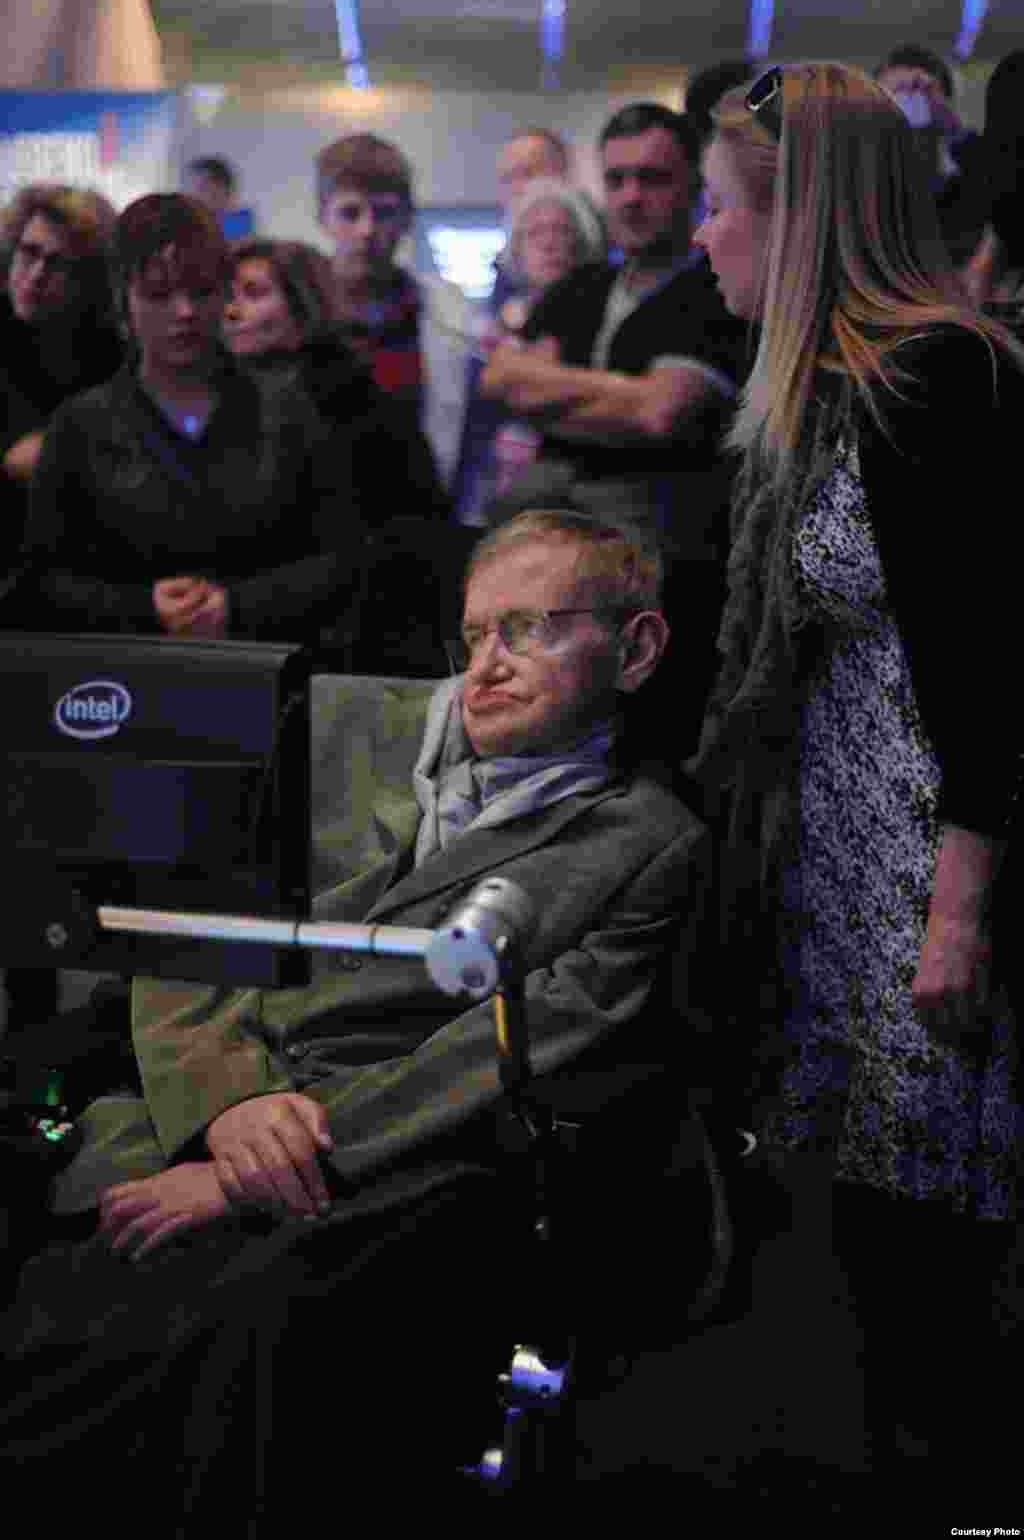 Stephen Hawking visits the London Science Museum's exhibit on his life and work. (Sarah Lee)